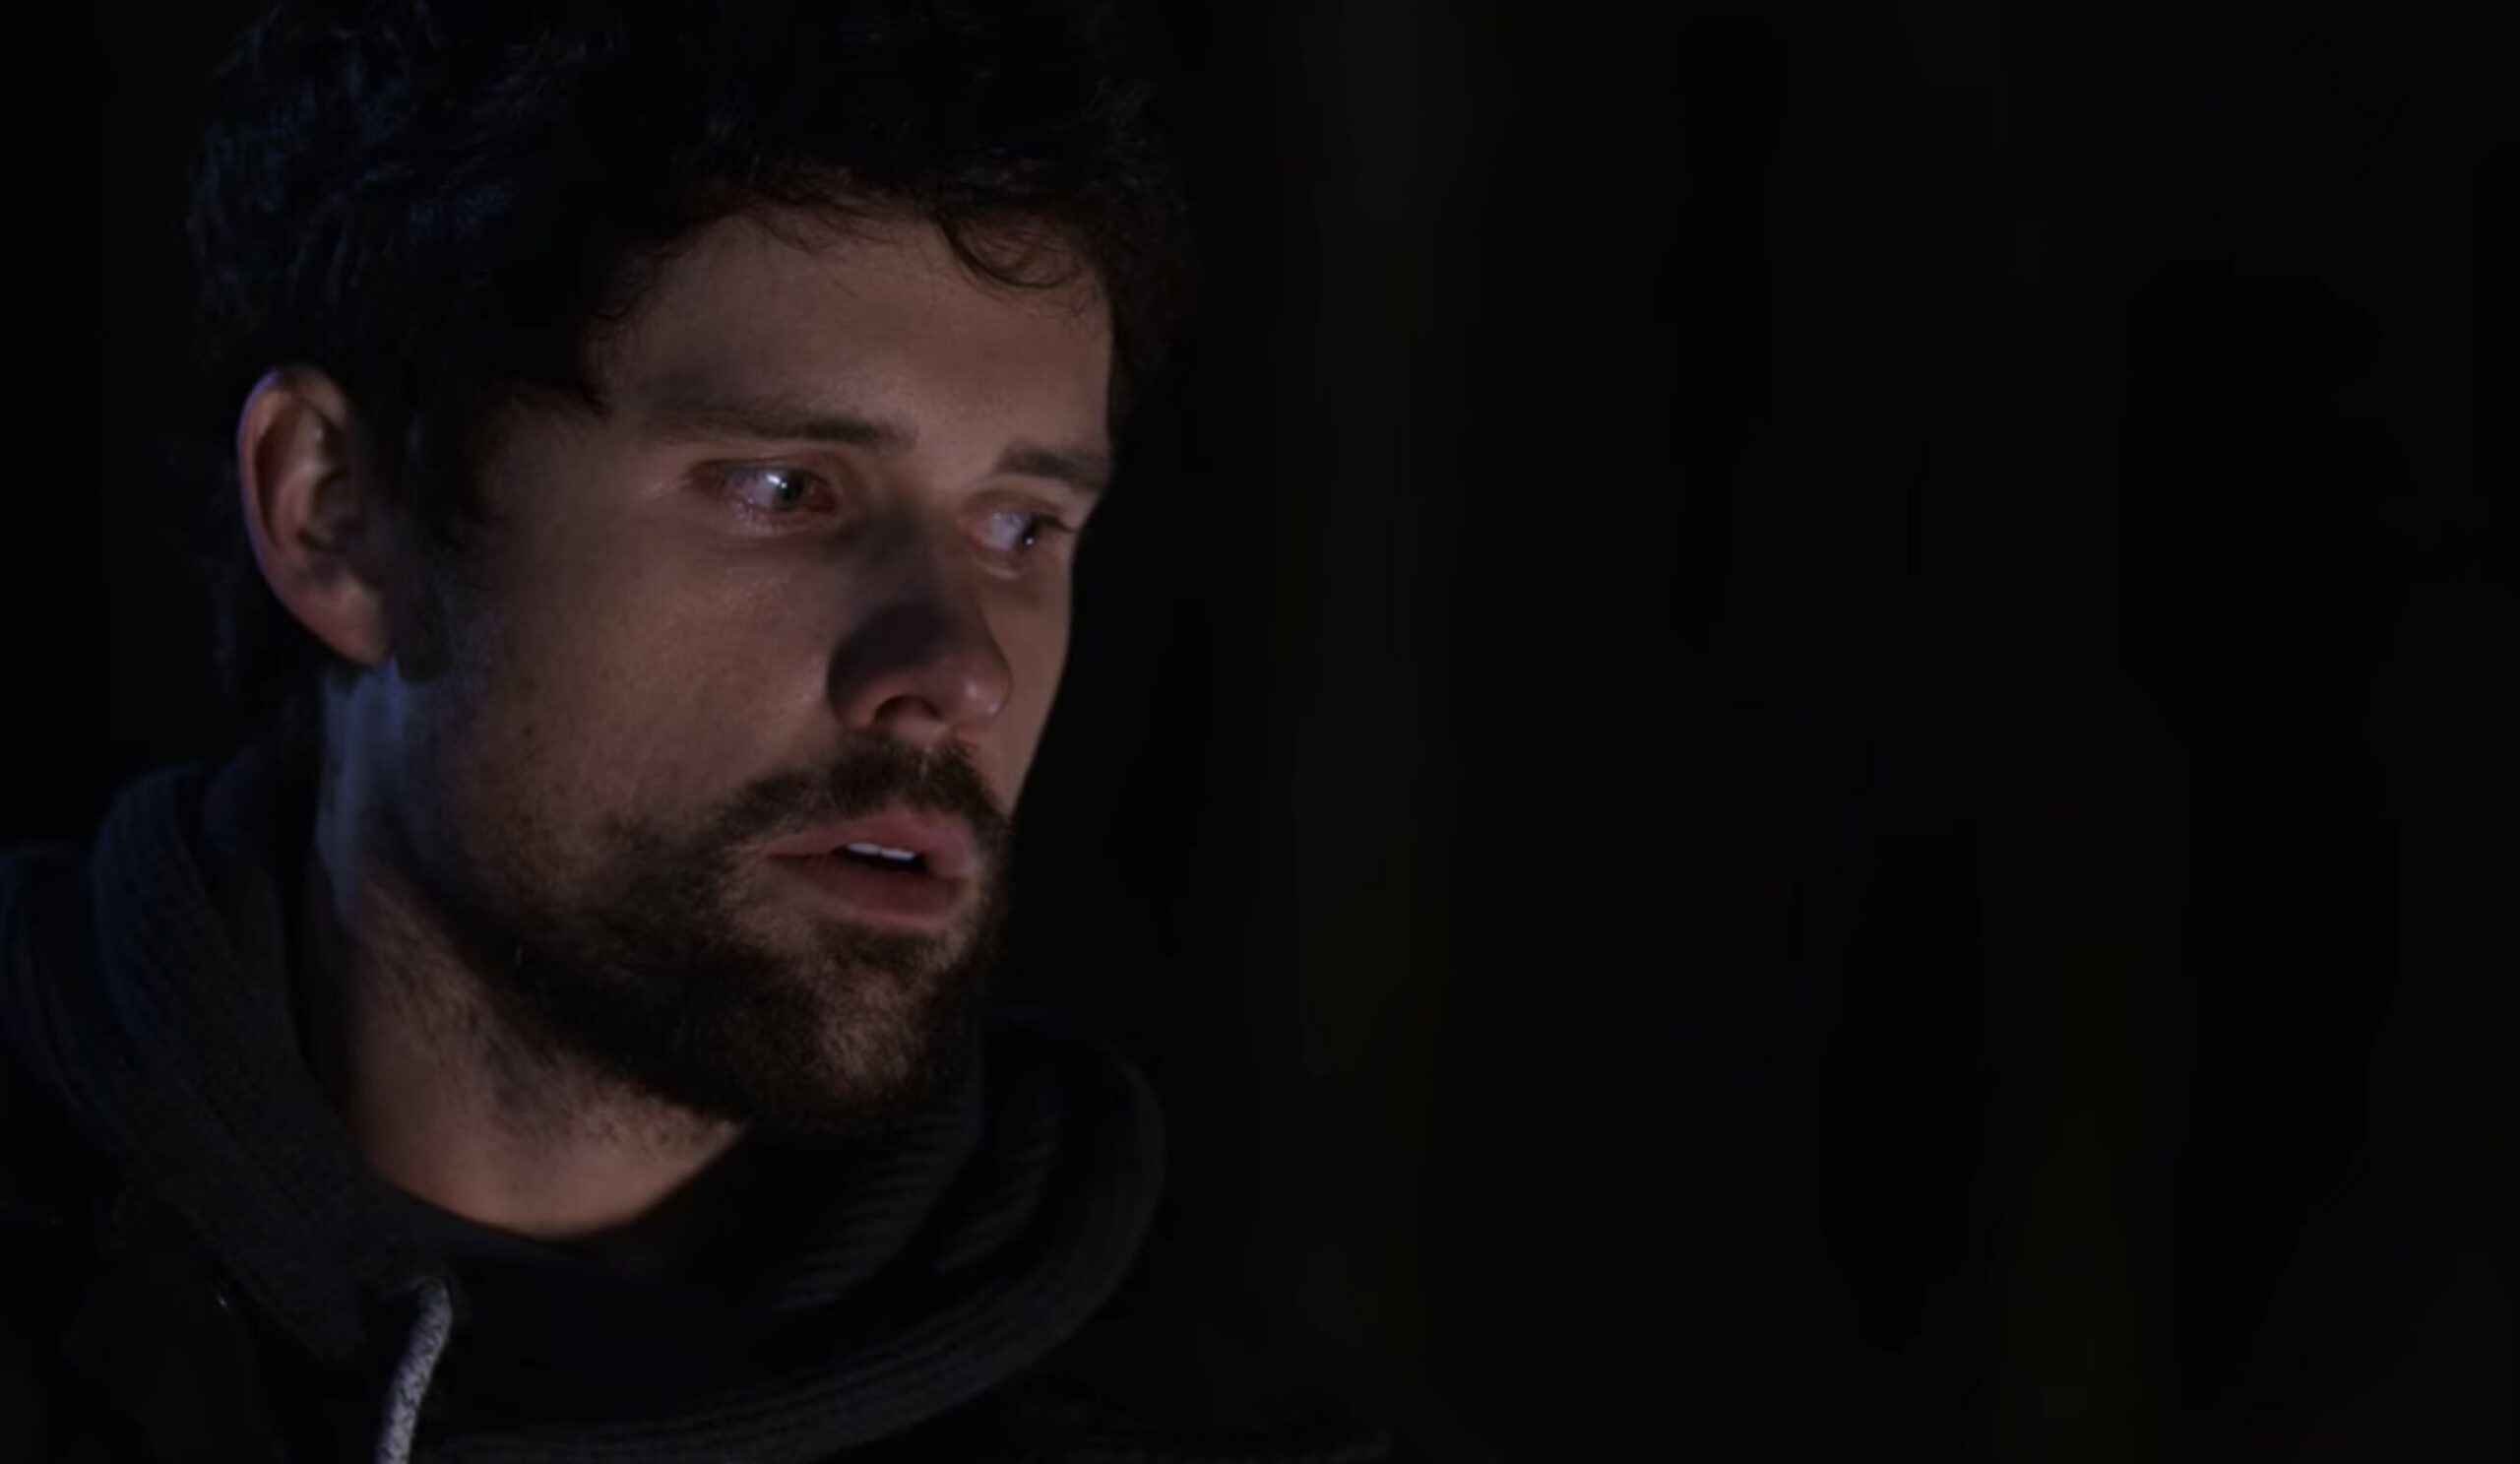 Brody in the dark faced with having to kill Spencer